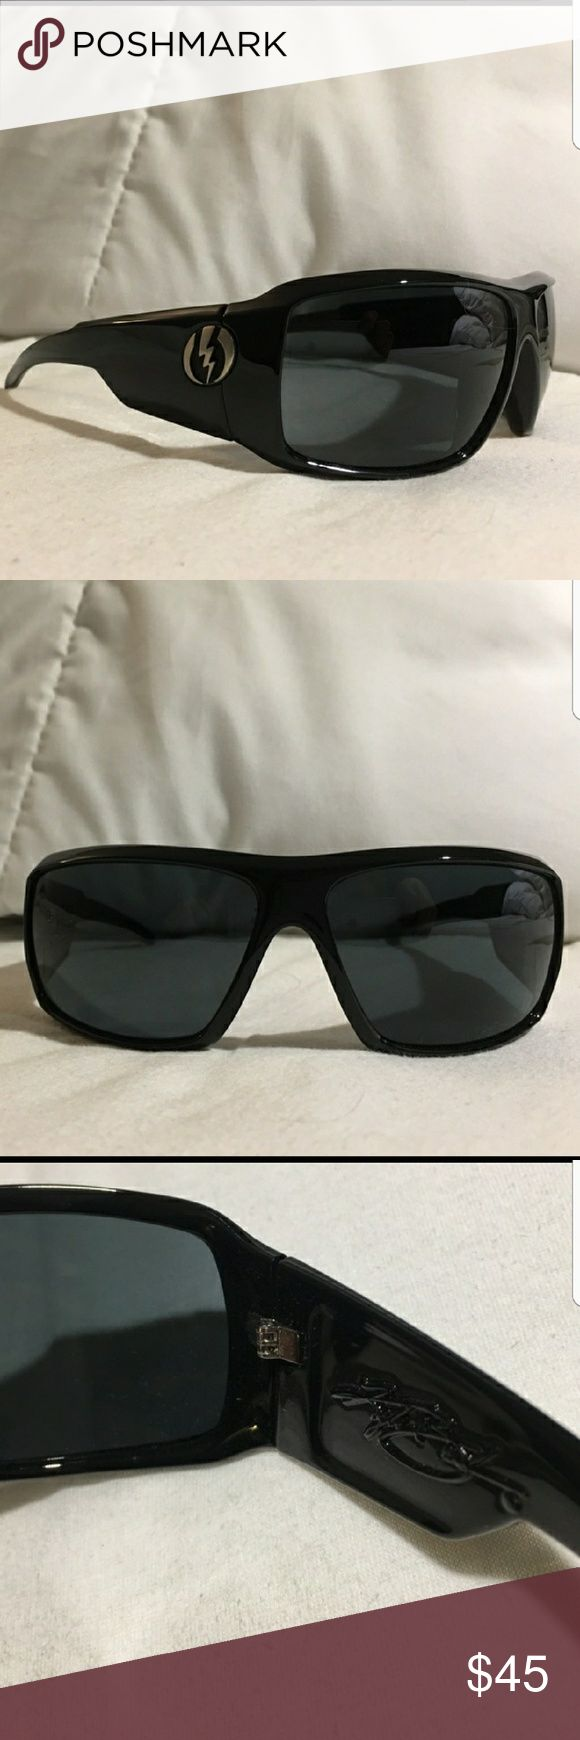 !BRAND NEW ELECTRIC SUNGLASSES! KYLE BUSCH! KB1'S! !BRAND NEW ELECTRIC SUNGLASSES! KYLE BUSCH! KB1'S! Electric Accessories Sunglasses